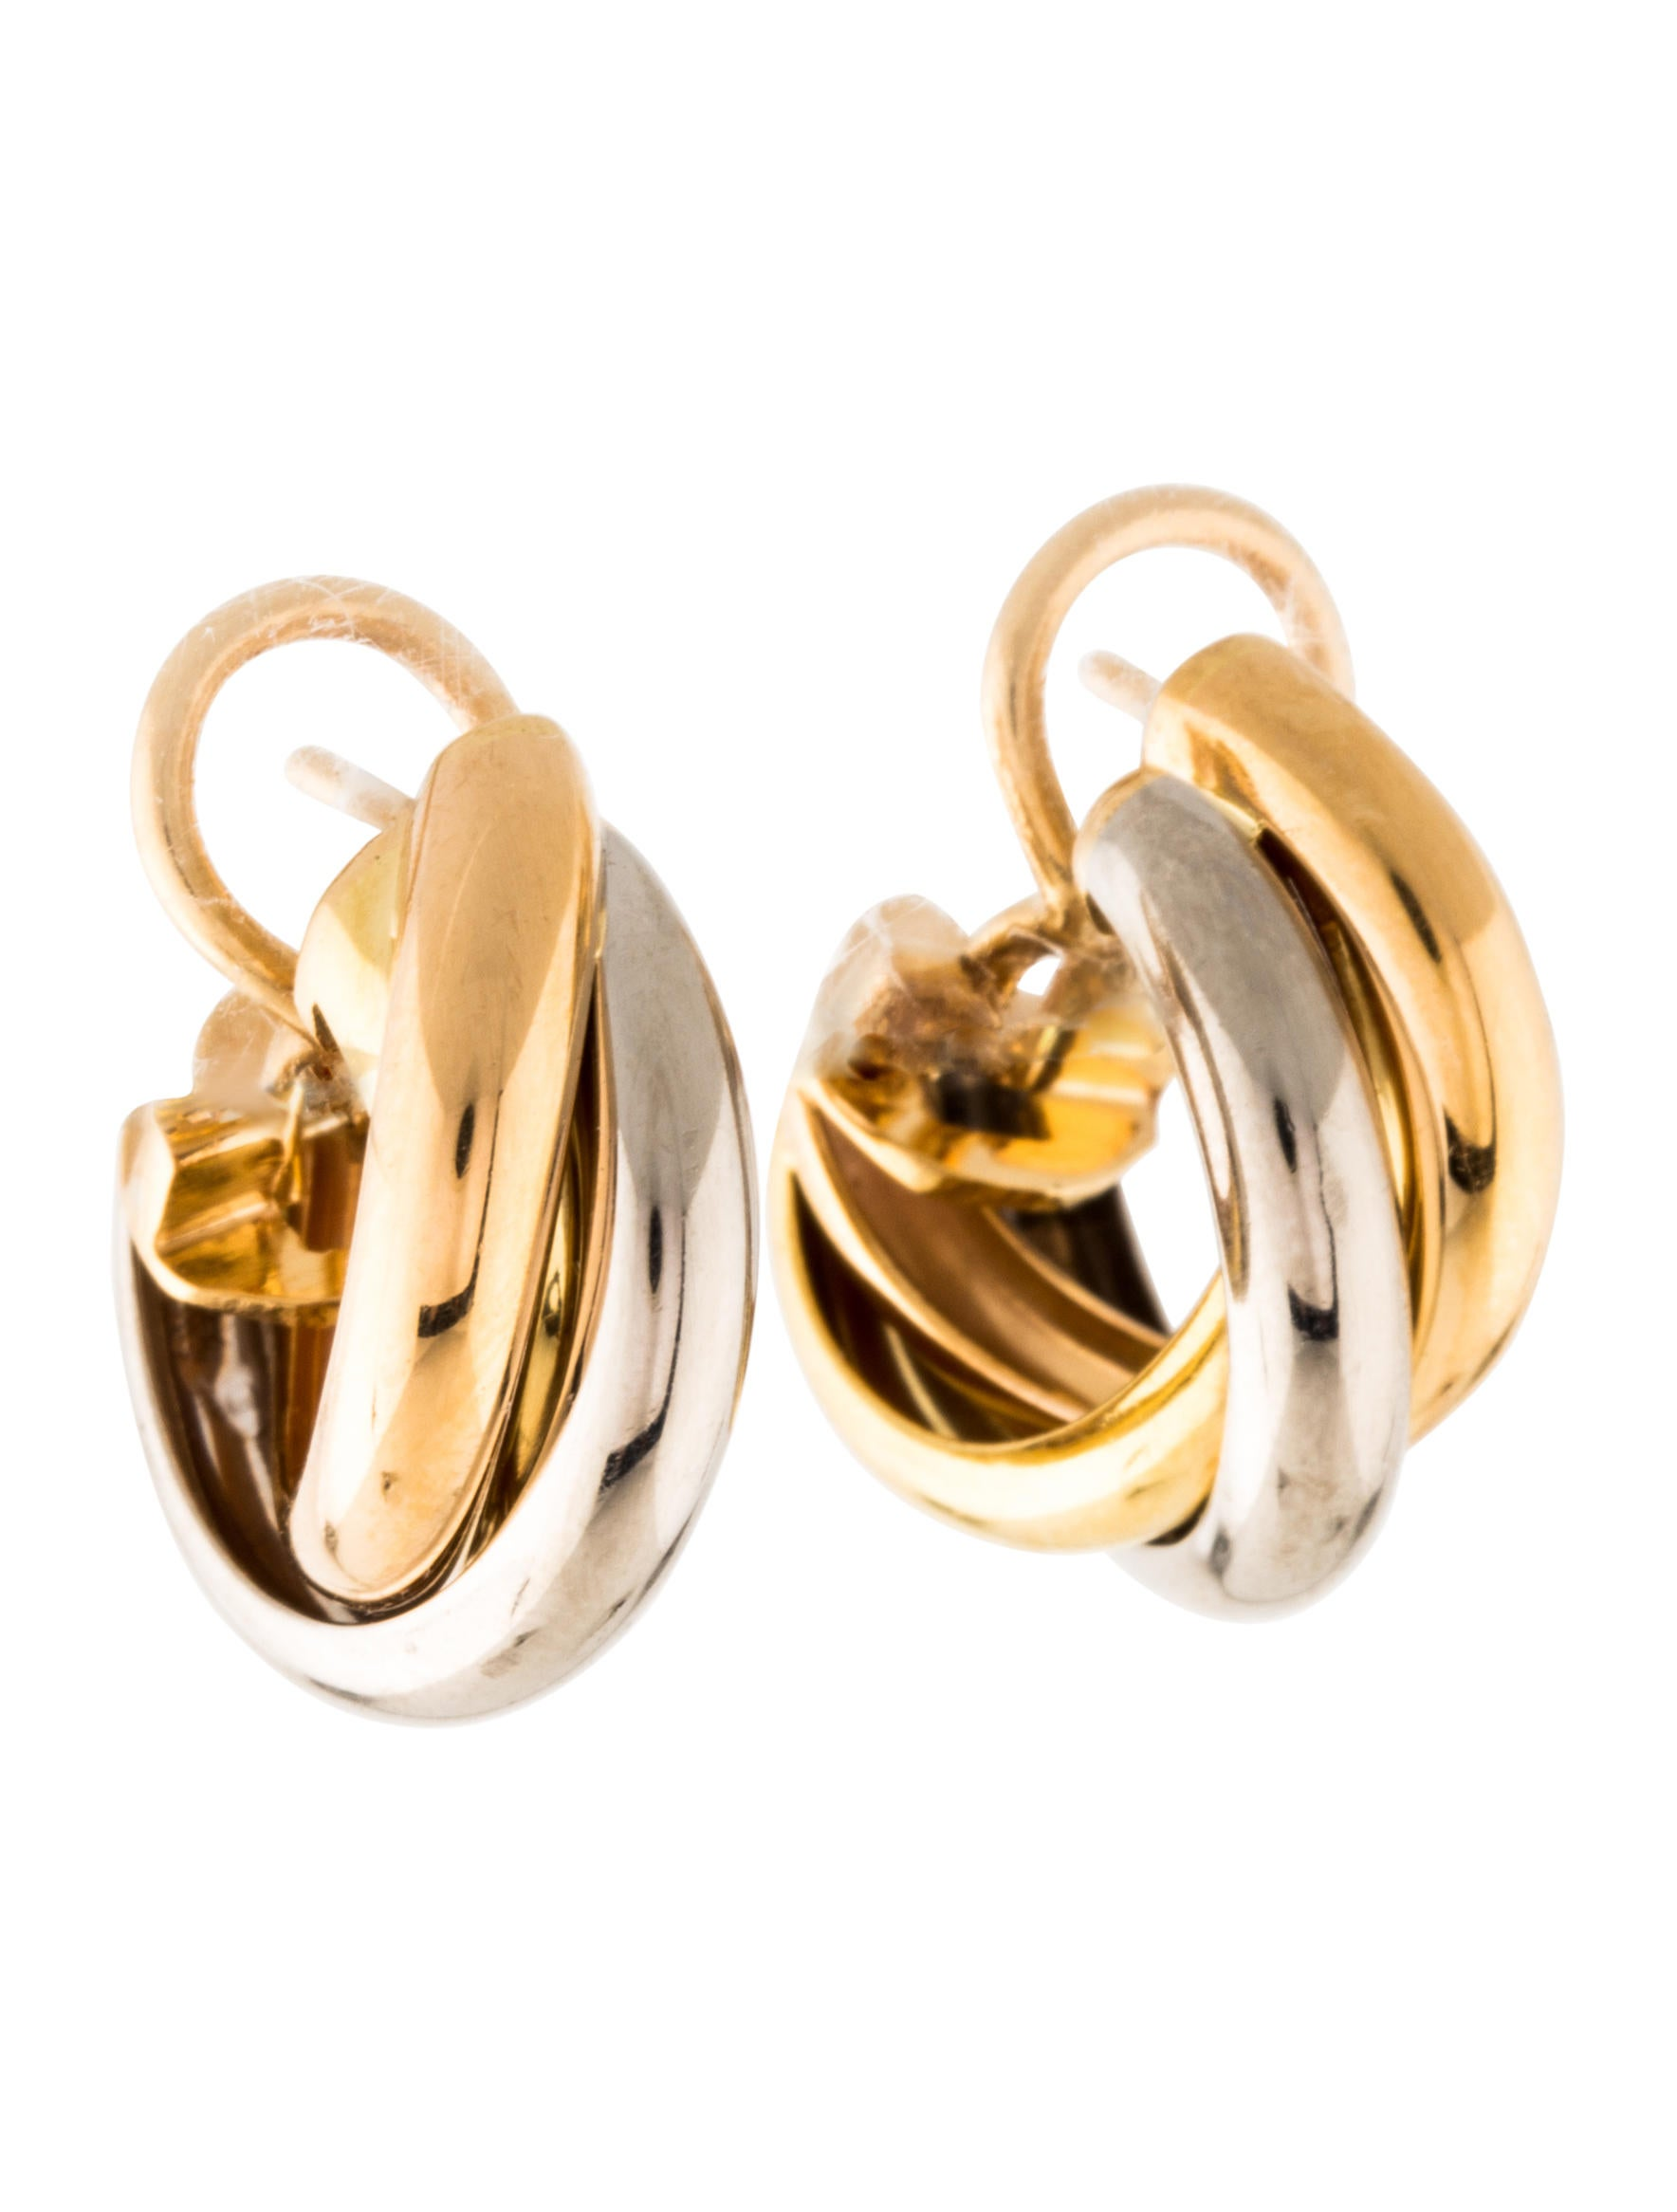 instant creoles a ref de photo cartier oles cr jewellery trinity earrings gold woman earring white luxe